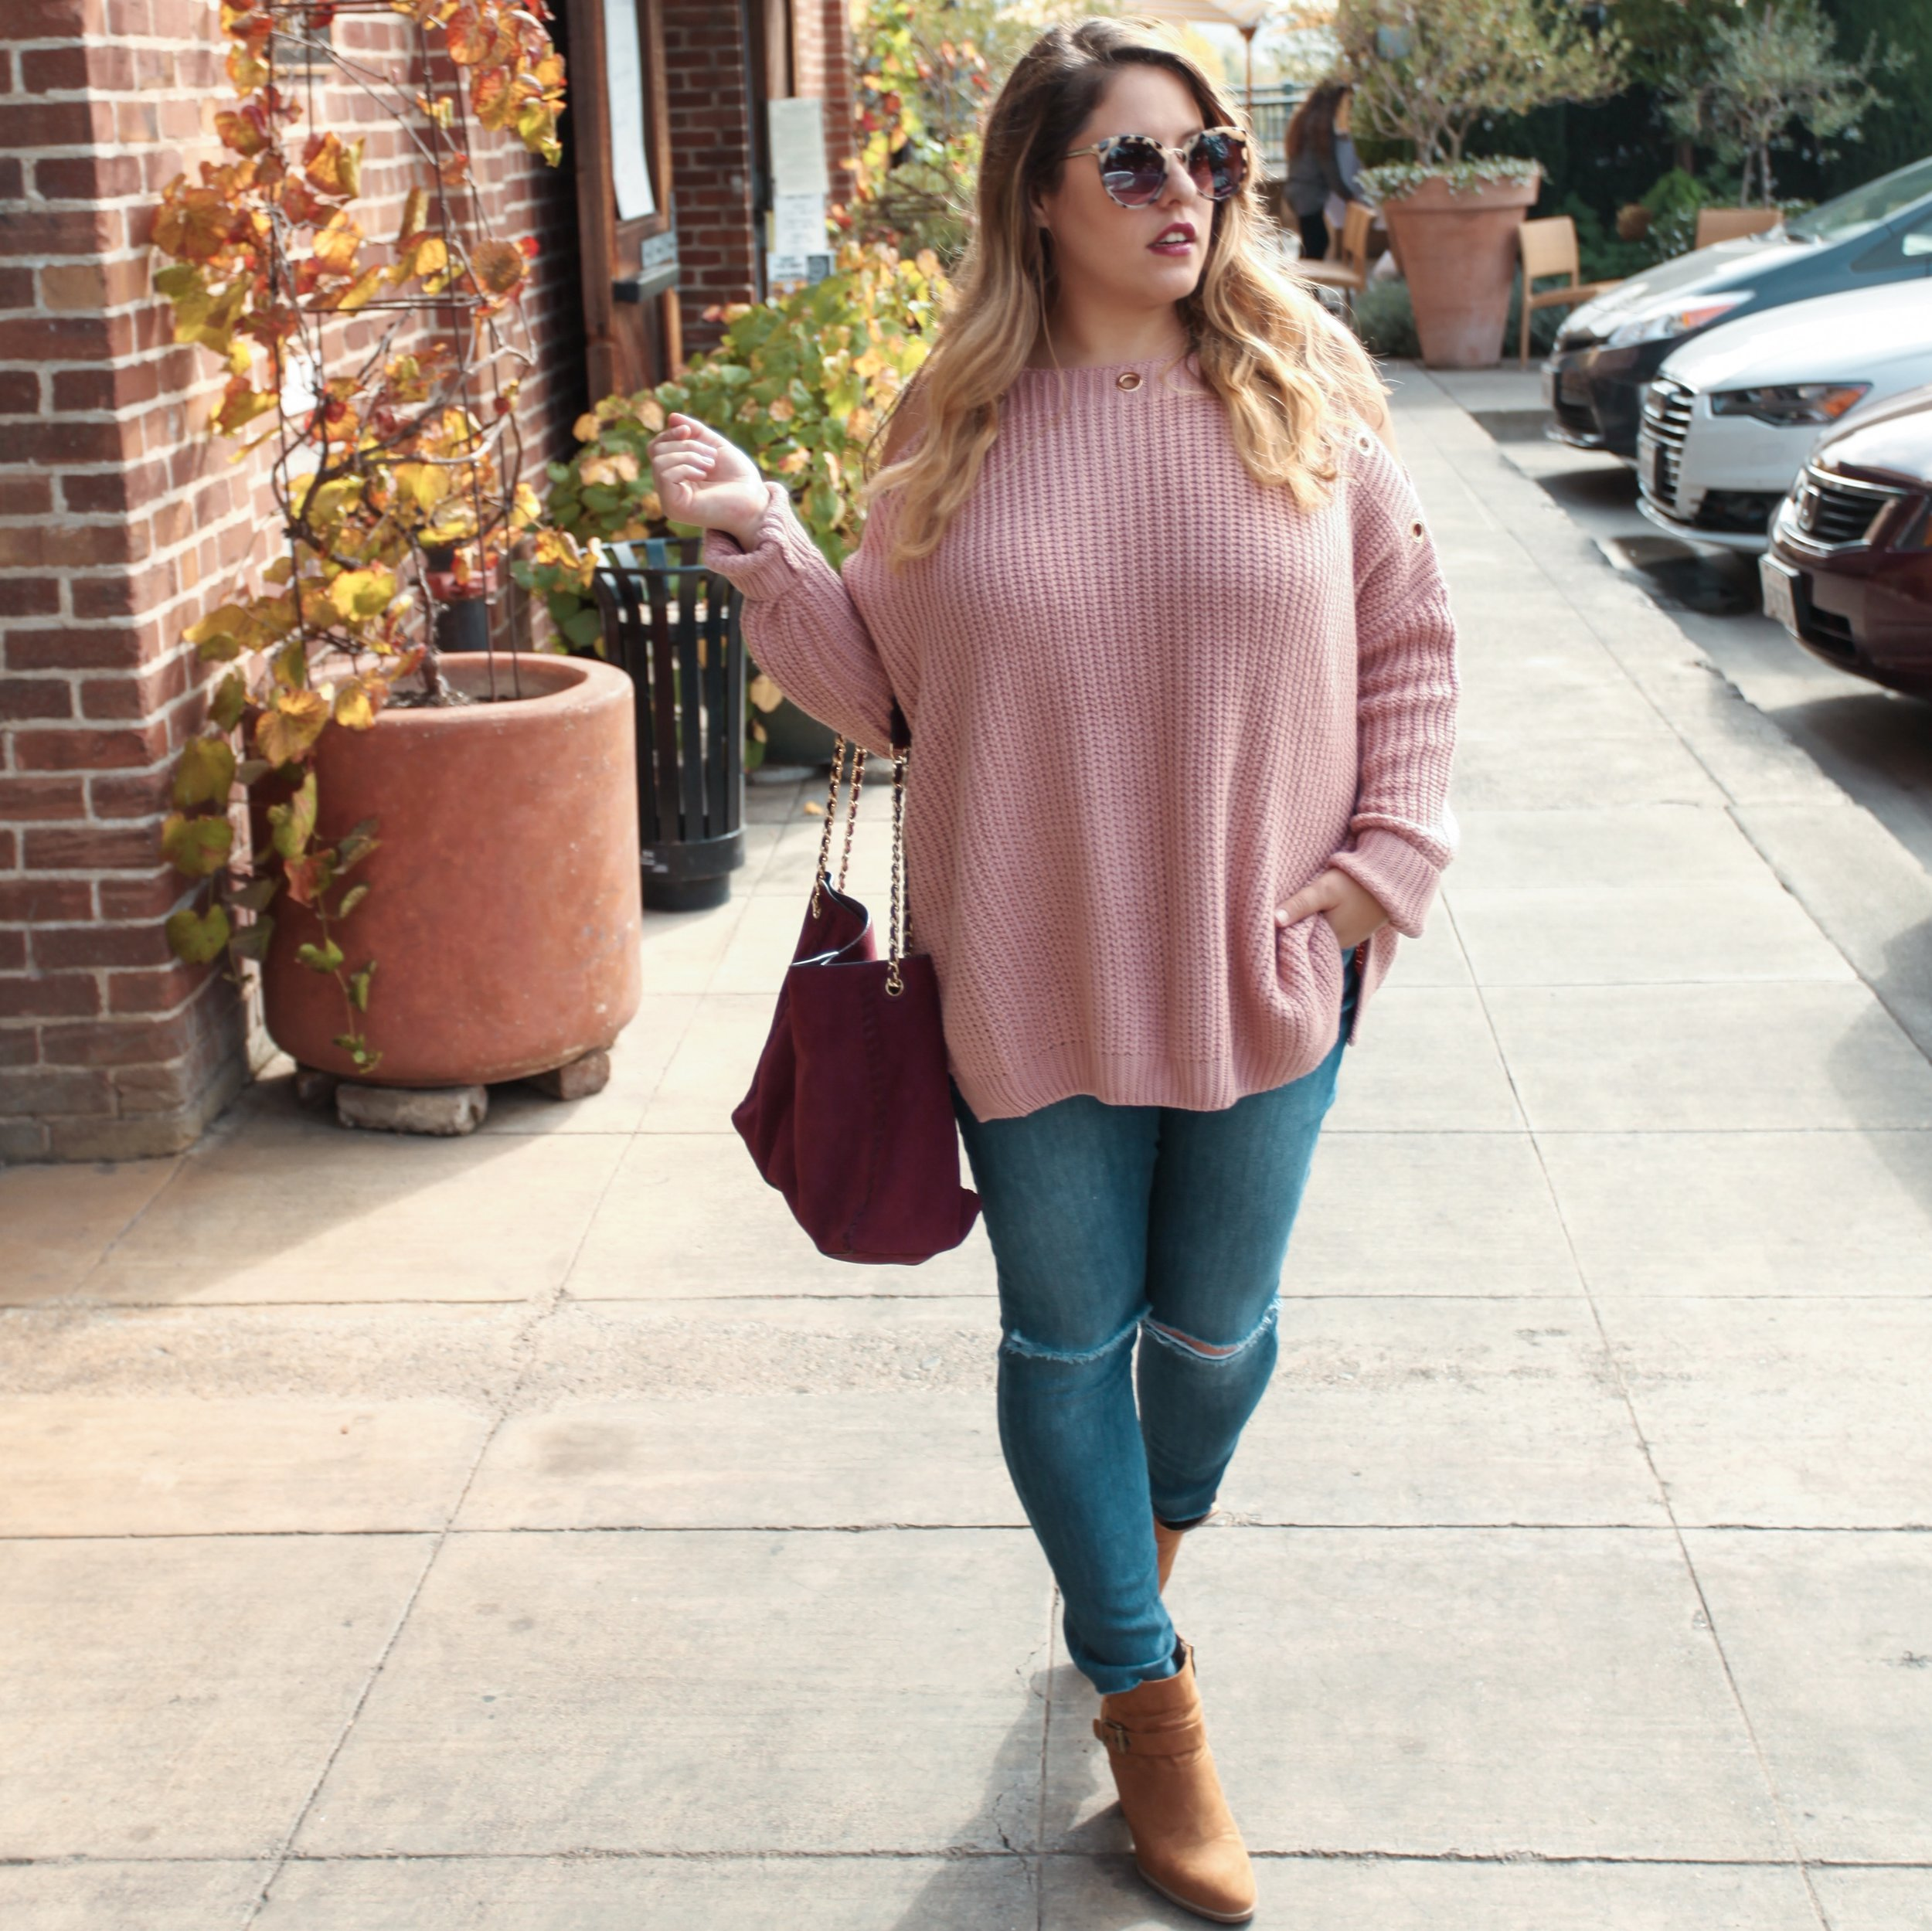 Details// Elan Sweater, Joes Jeans, both from Sisters boutique, Franco sarto booties from Marshall's, Tory Burch Bag and Laundry By Shelli Seigal Sunglasses.